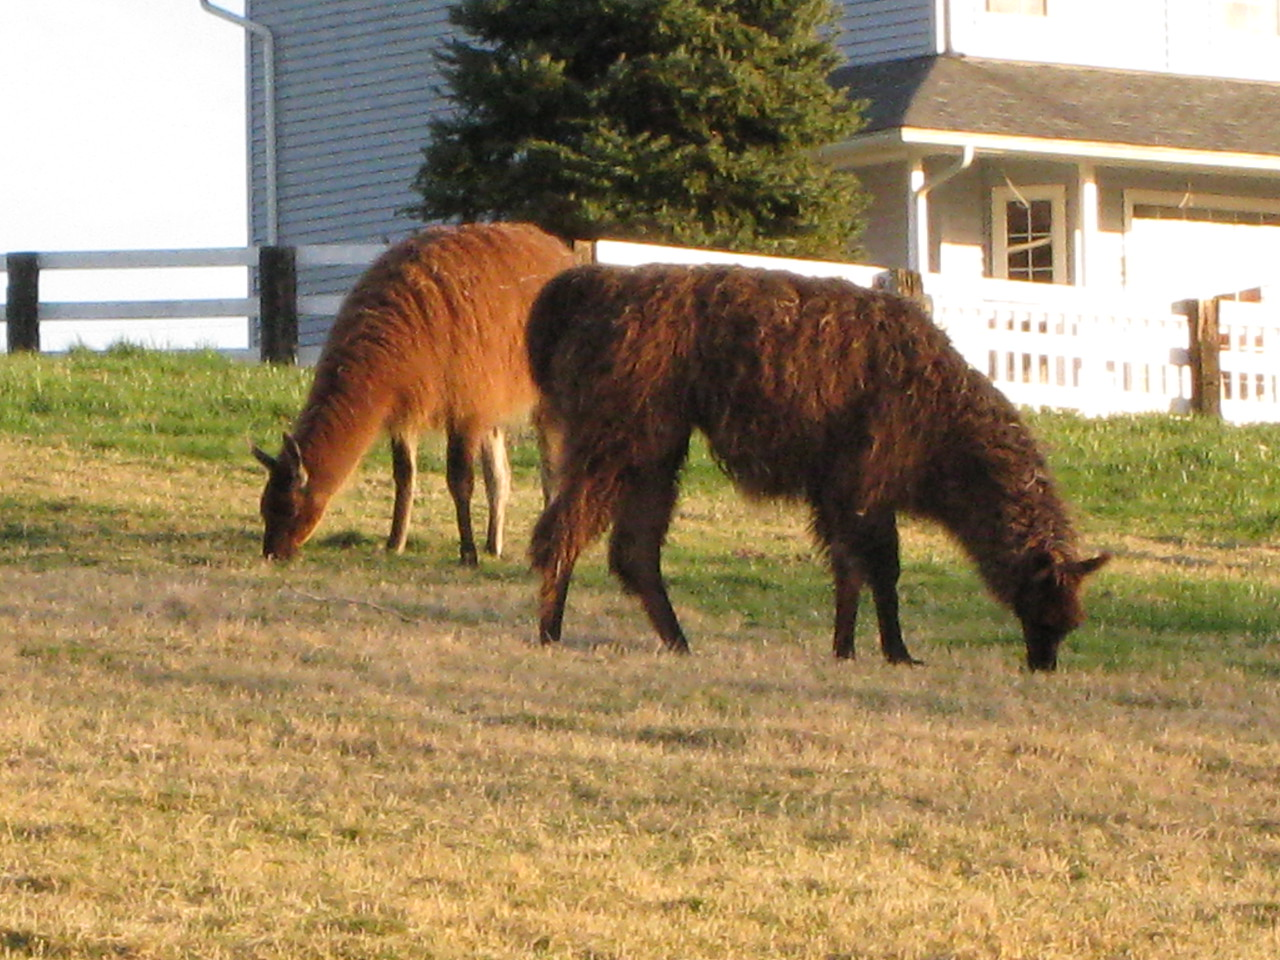 Some Llamas that live in a field just down the road from us.